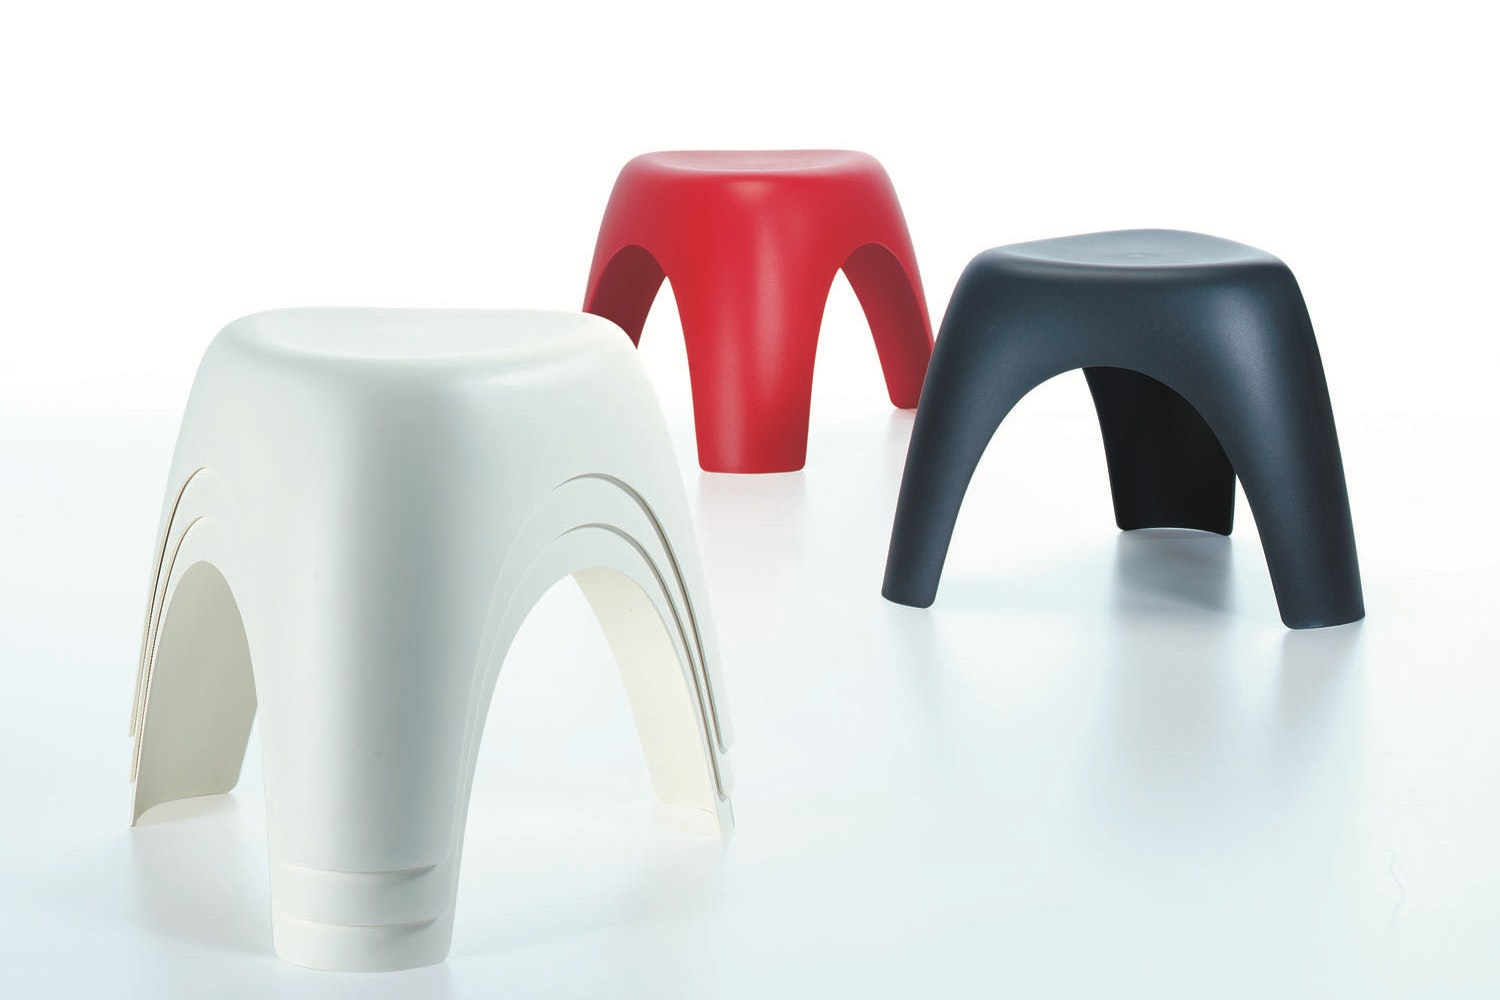 Elephant Stool by Sori Yanagi for Vitra